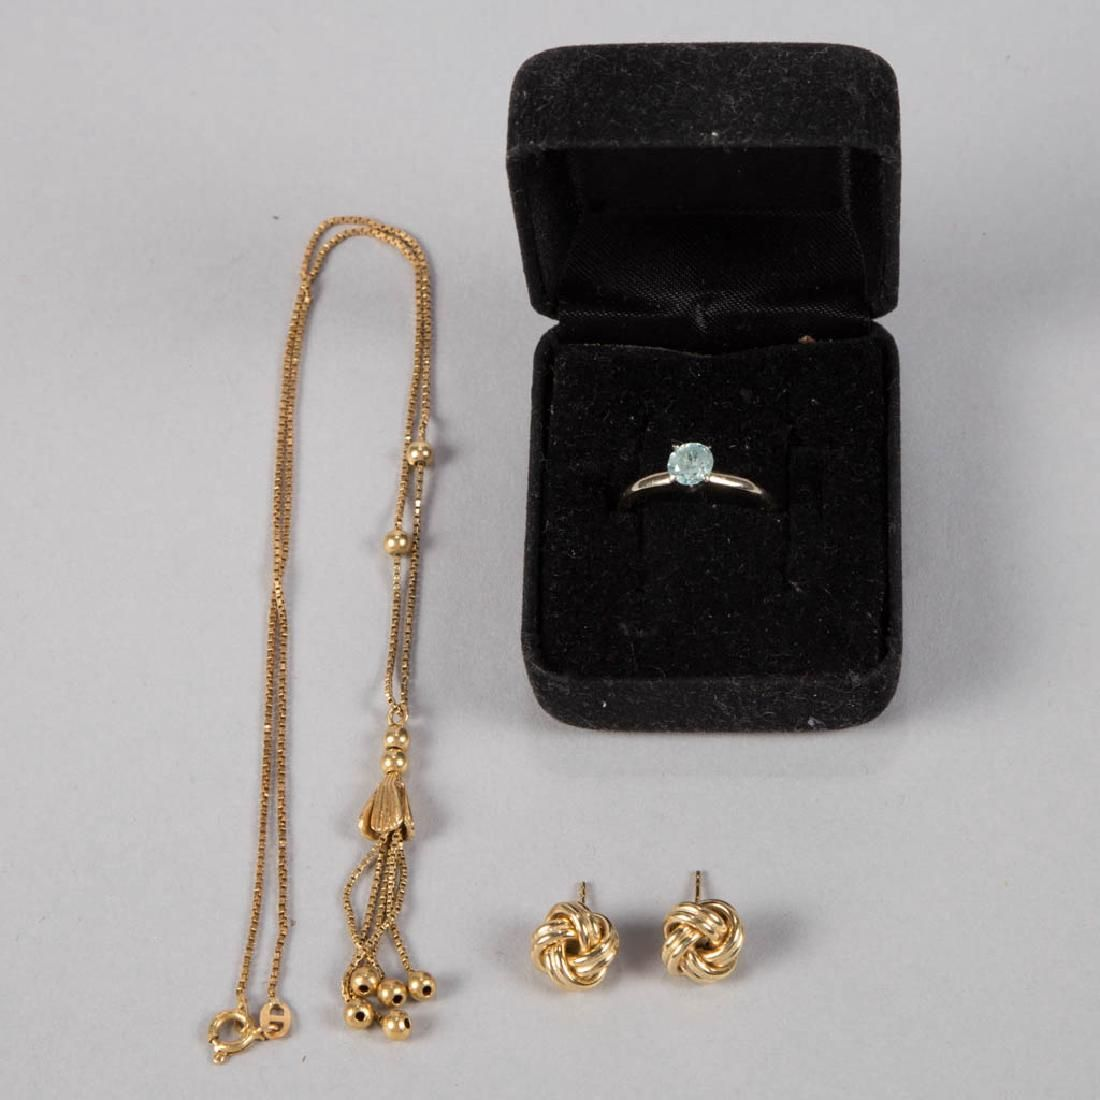 VINTAGE 18K GOLD LADY'S JEWELRY, LOT OF FOUR PIECES